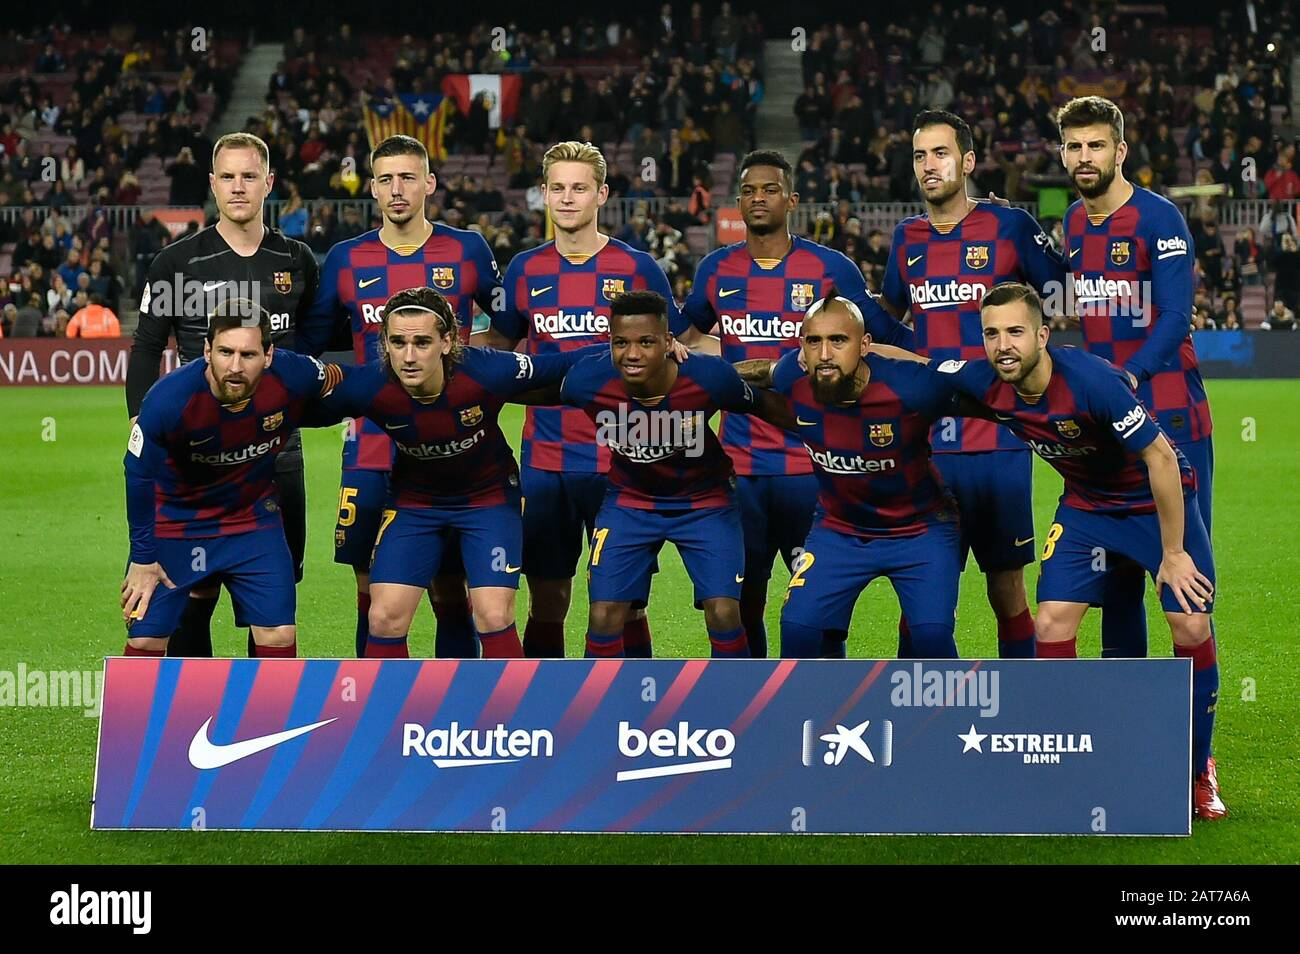 barcelona spain january 30 the fc barcelona team line up for a photo prior to kick https www alamy com barcelona spain january 30the fc barcelona team line up for a photo prior to kick offduring the spanish copa del rey round of 16 match between fc barcelona and sd leganes at camp nou on january 30 2020 in barcelona spain photo by daxespa images image341910418 html